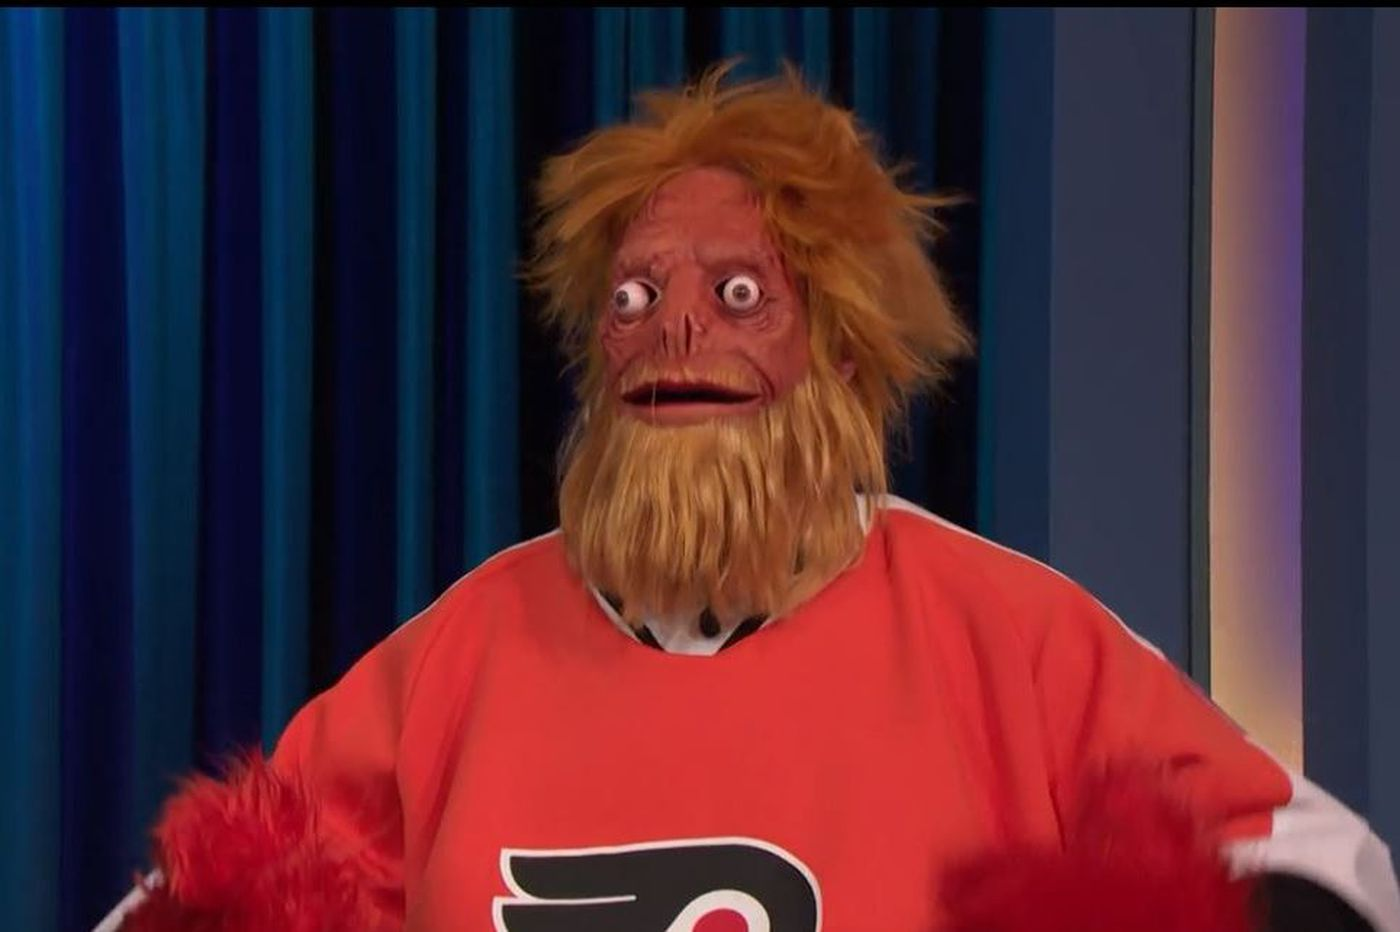 Gritty revealed as actual monster in 'Conan' interview